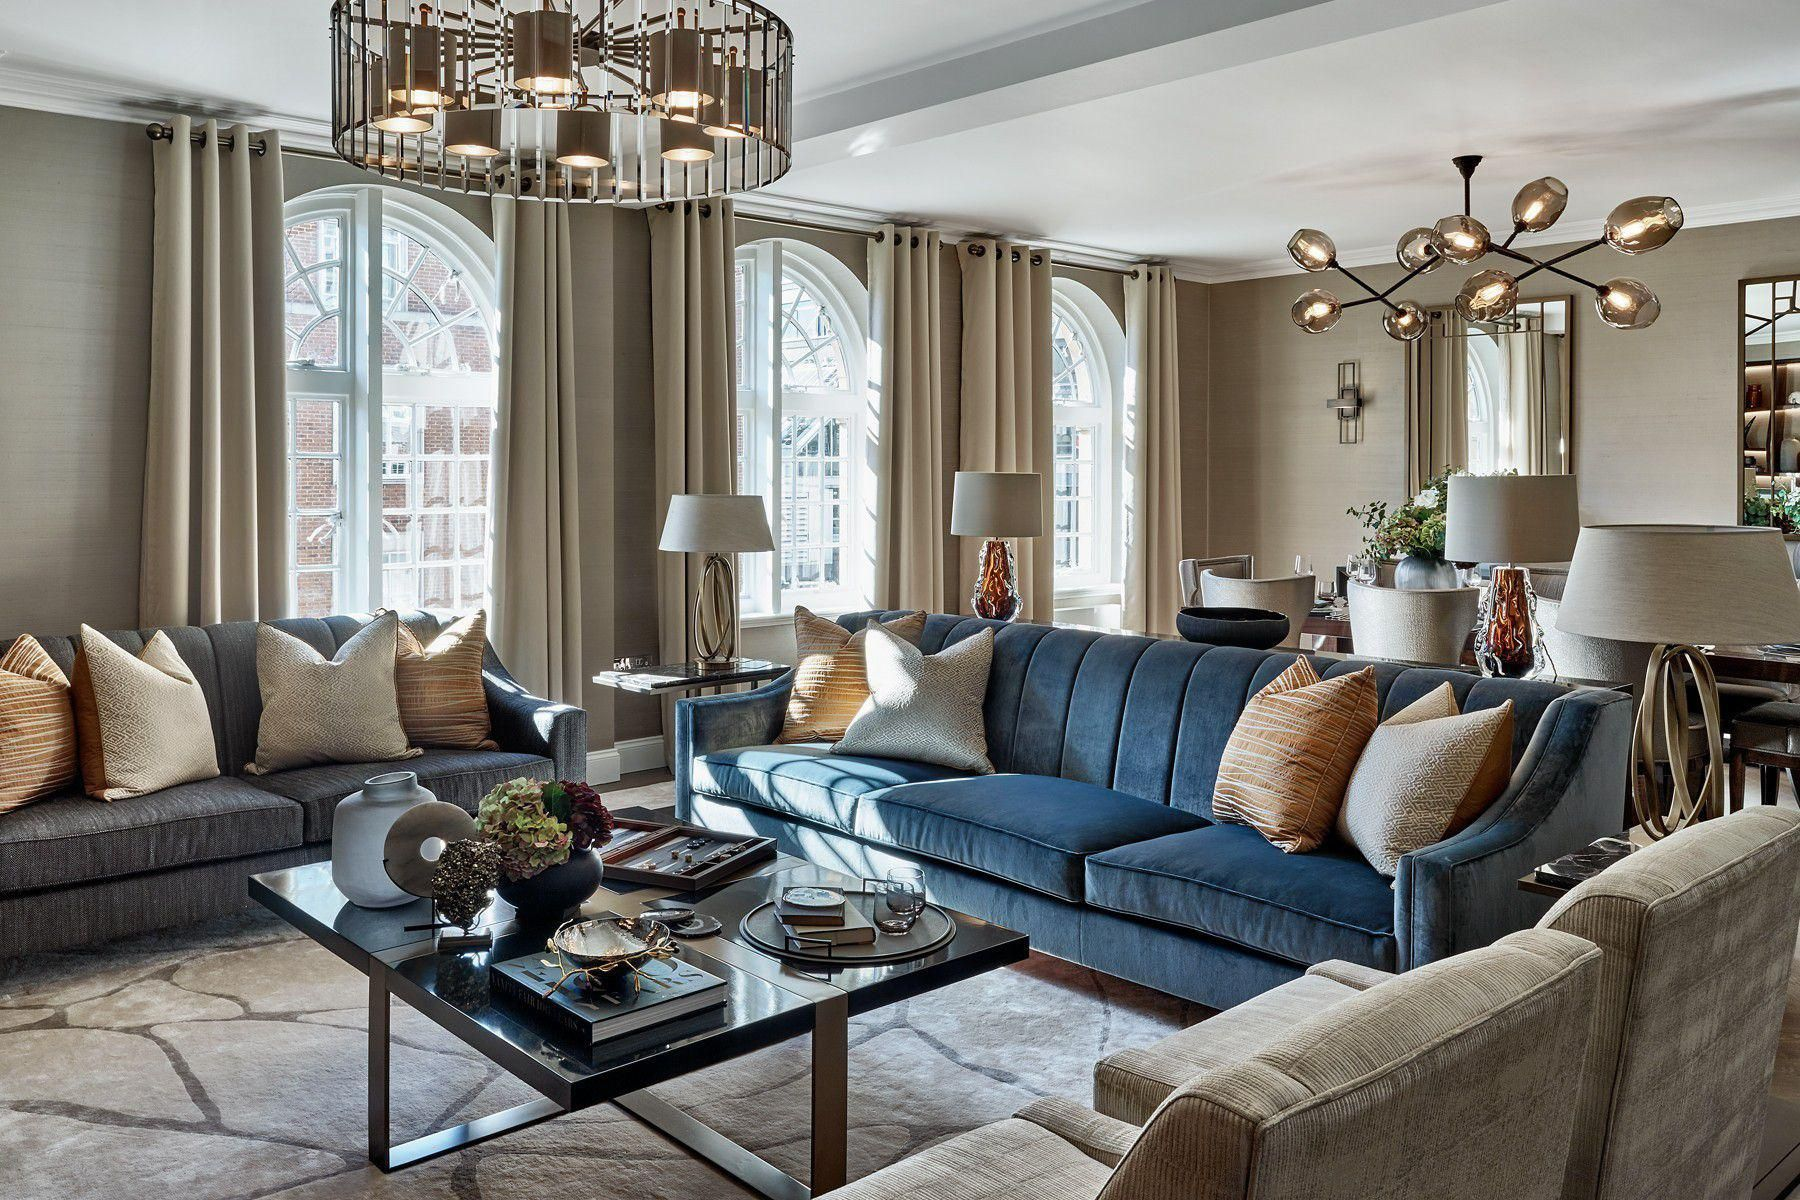 Luxury Interior Designs: Knightsbridge Apartment, Luxury Interior Design